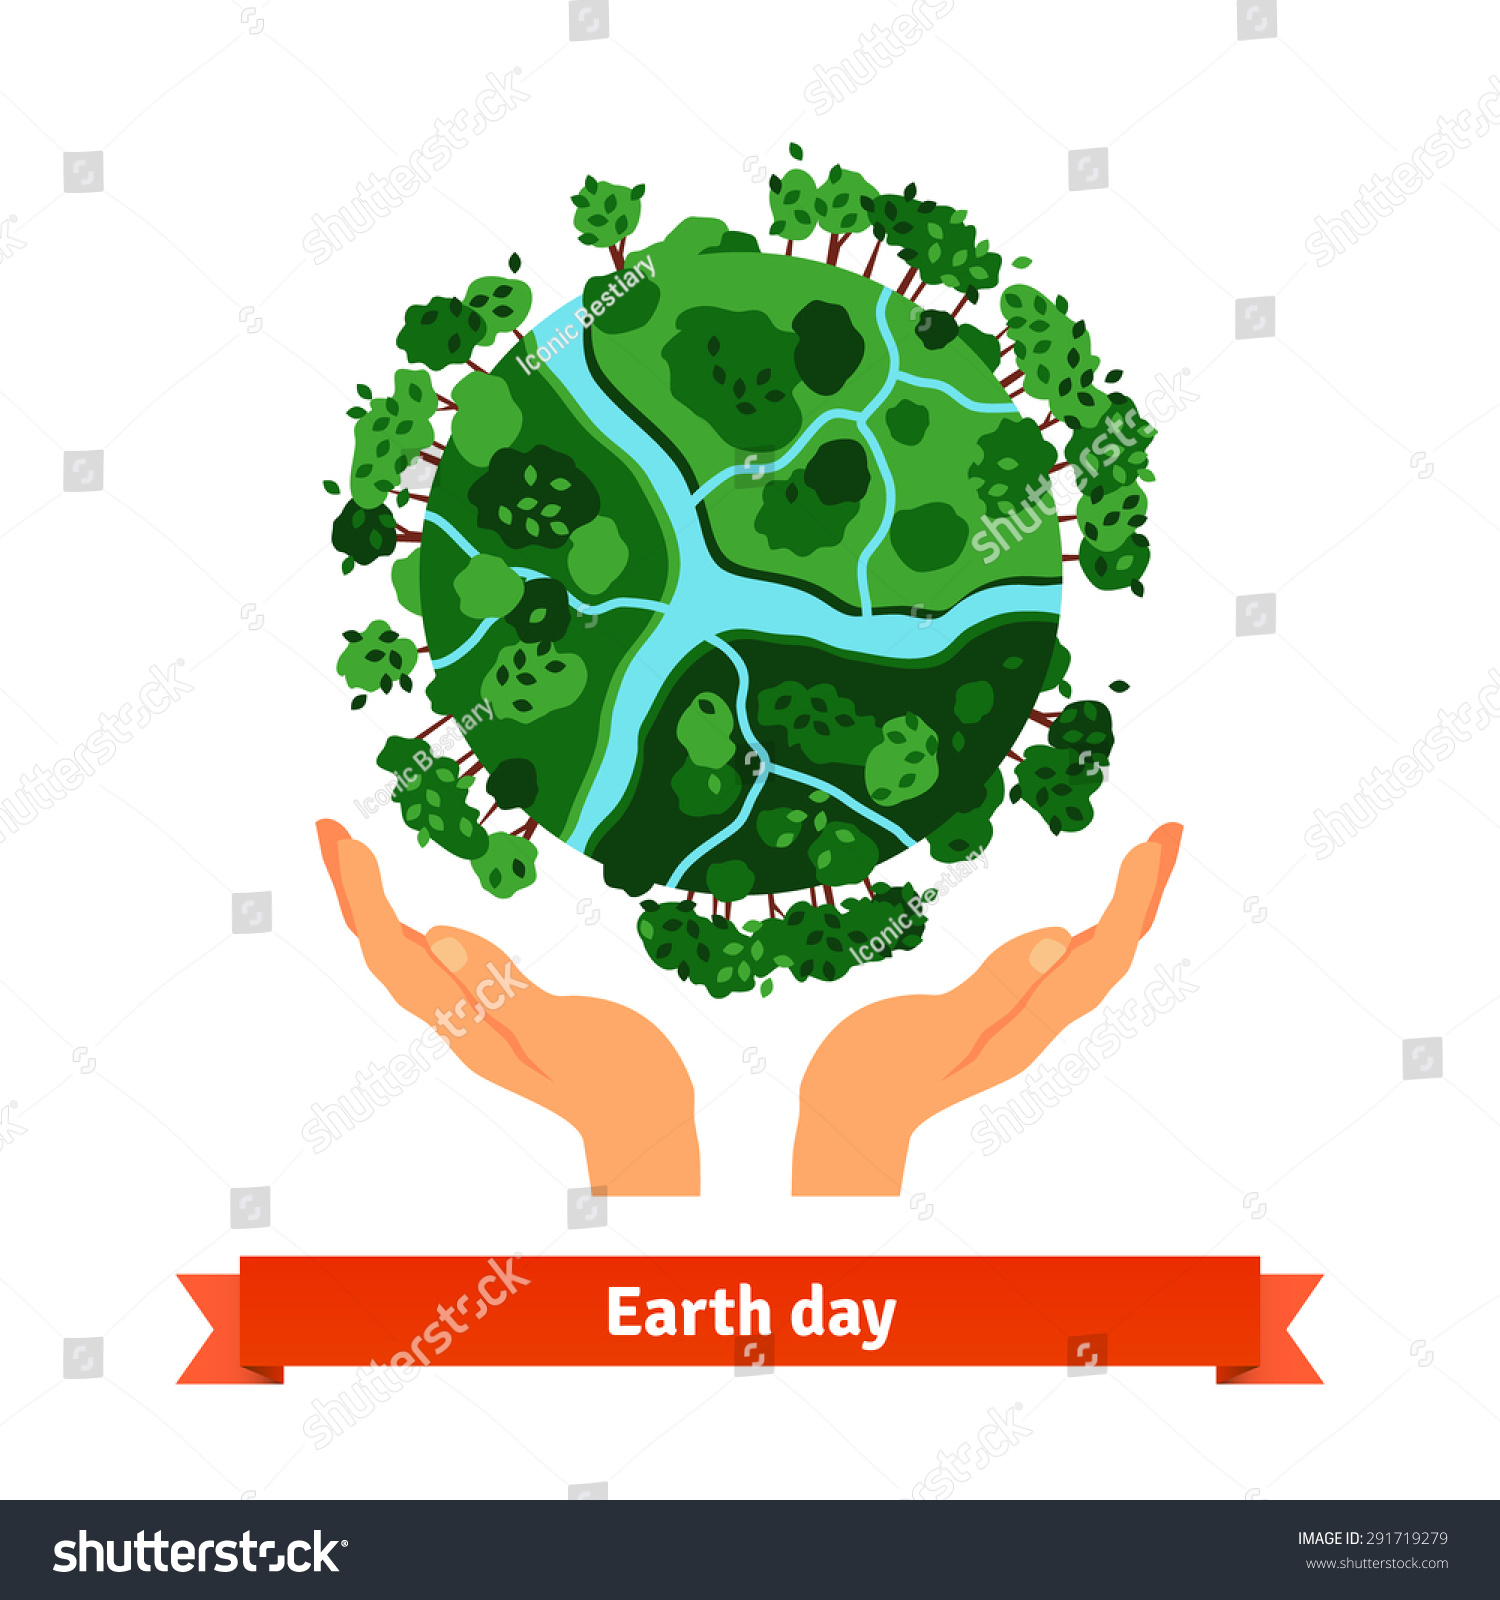 essay on save planet earth term paper topics save planet earth save mother earth